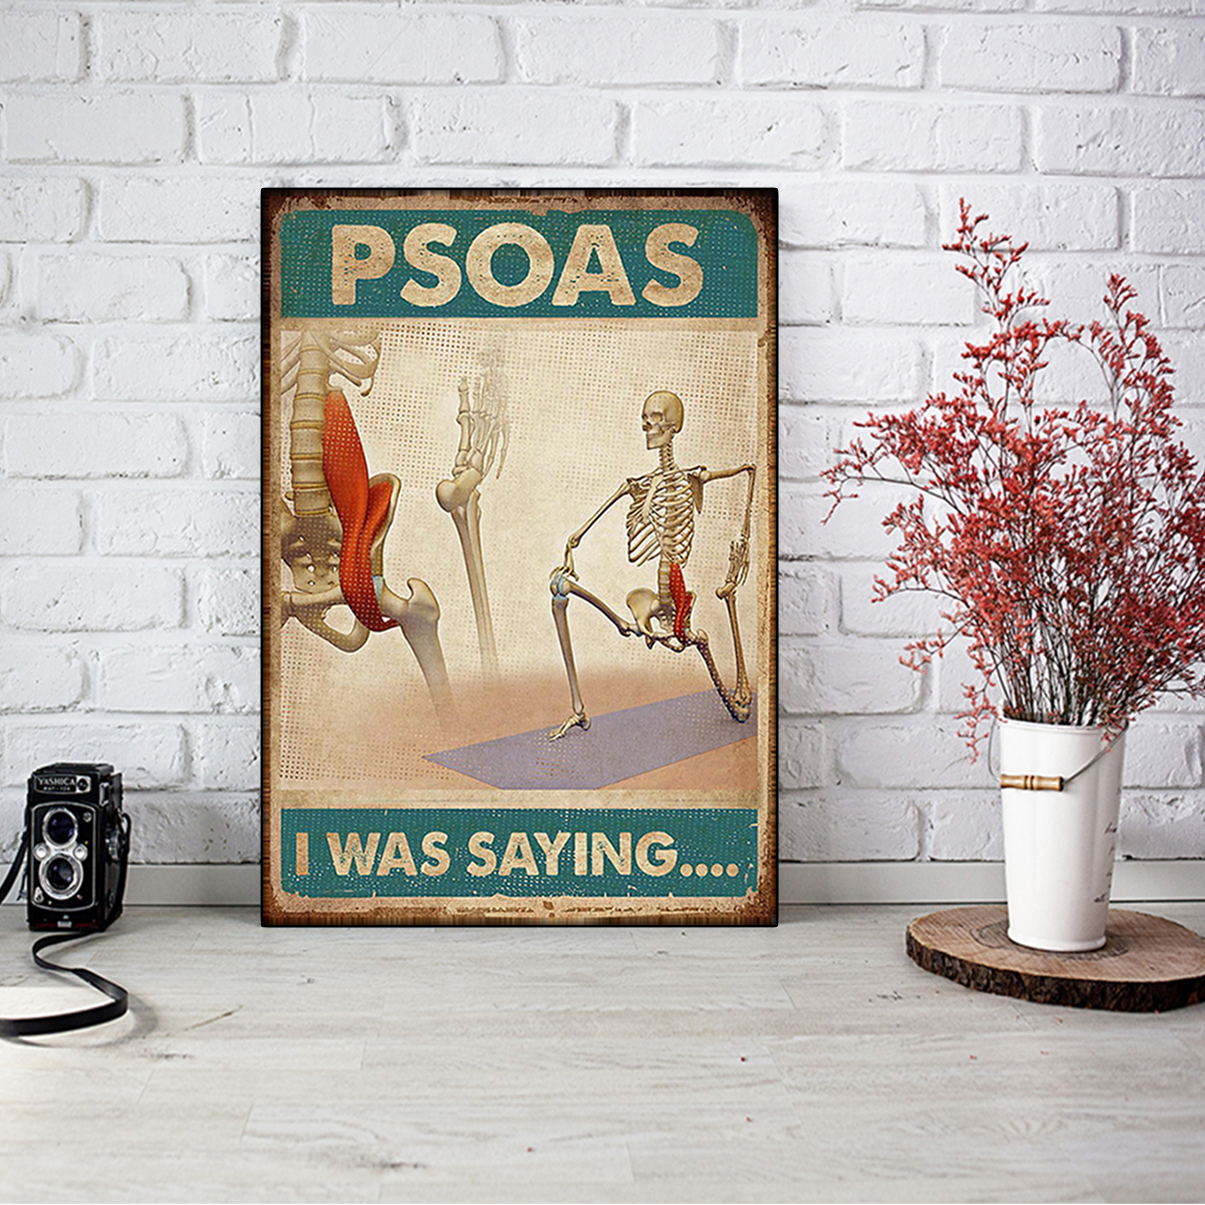 Massage therapist psoas I was saying poster A1